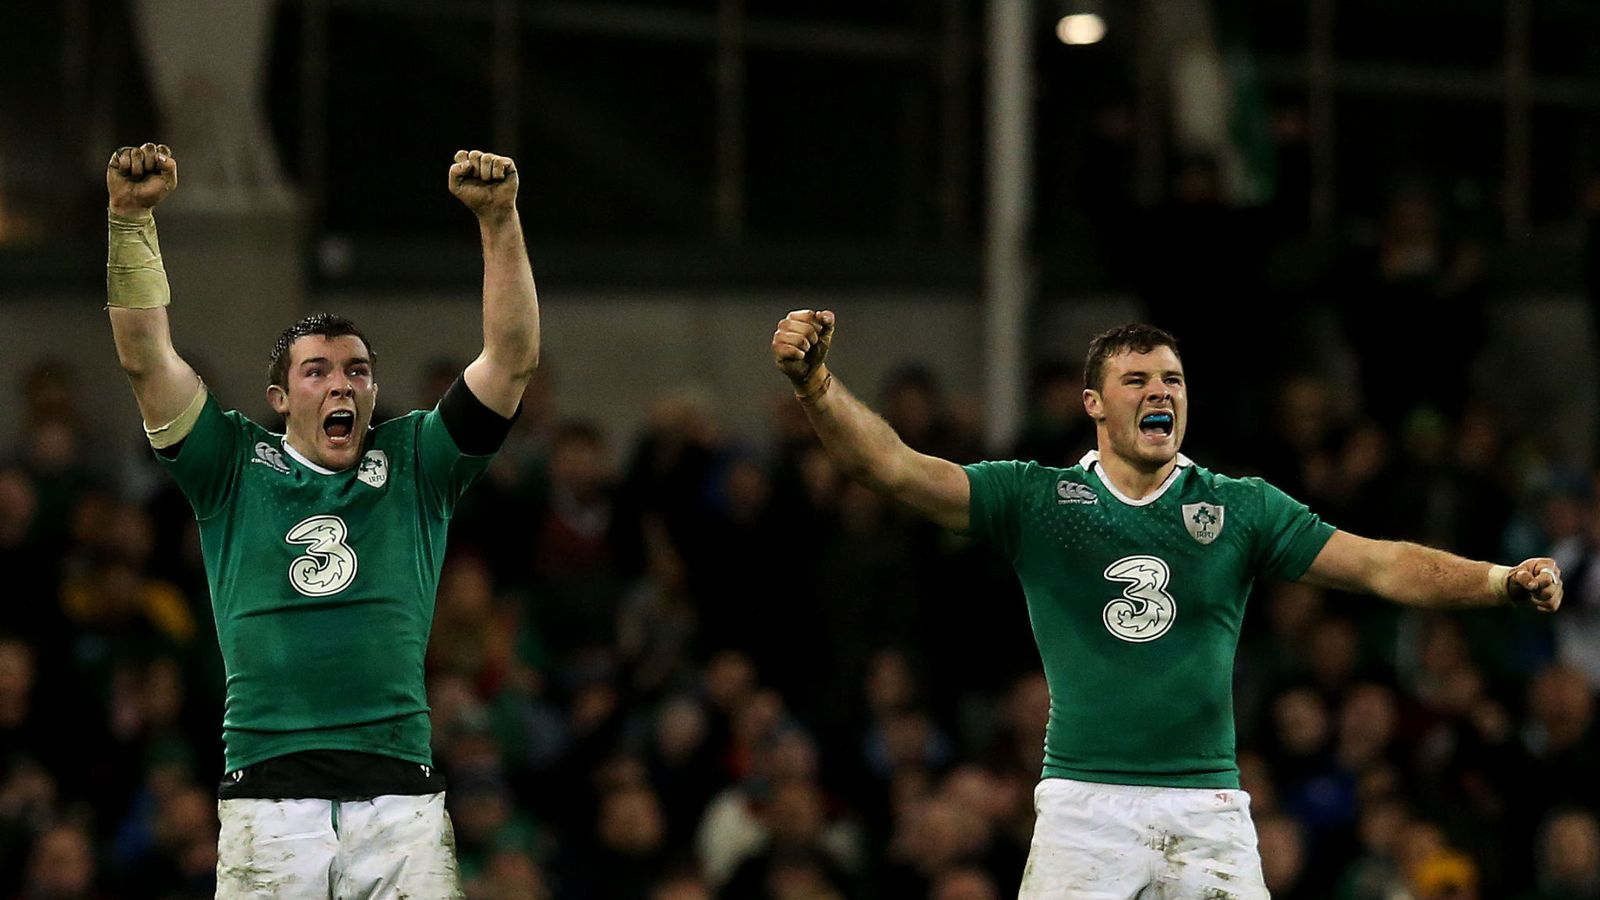 bd3d53b84b Ireland centre Robbie Henshaw expects tough Six Nations test against Wales